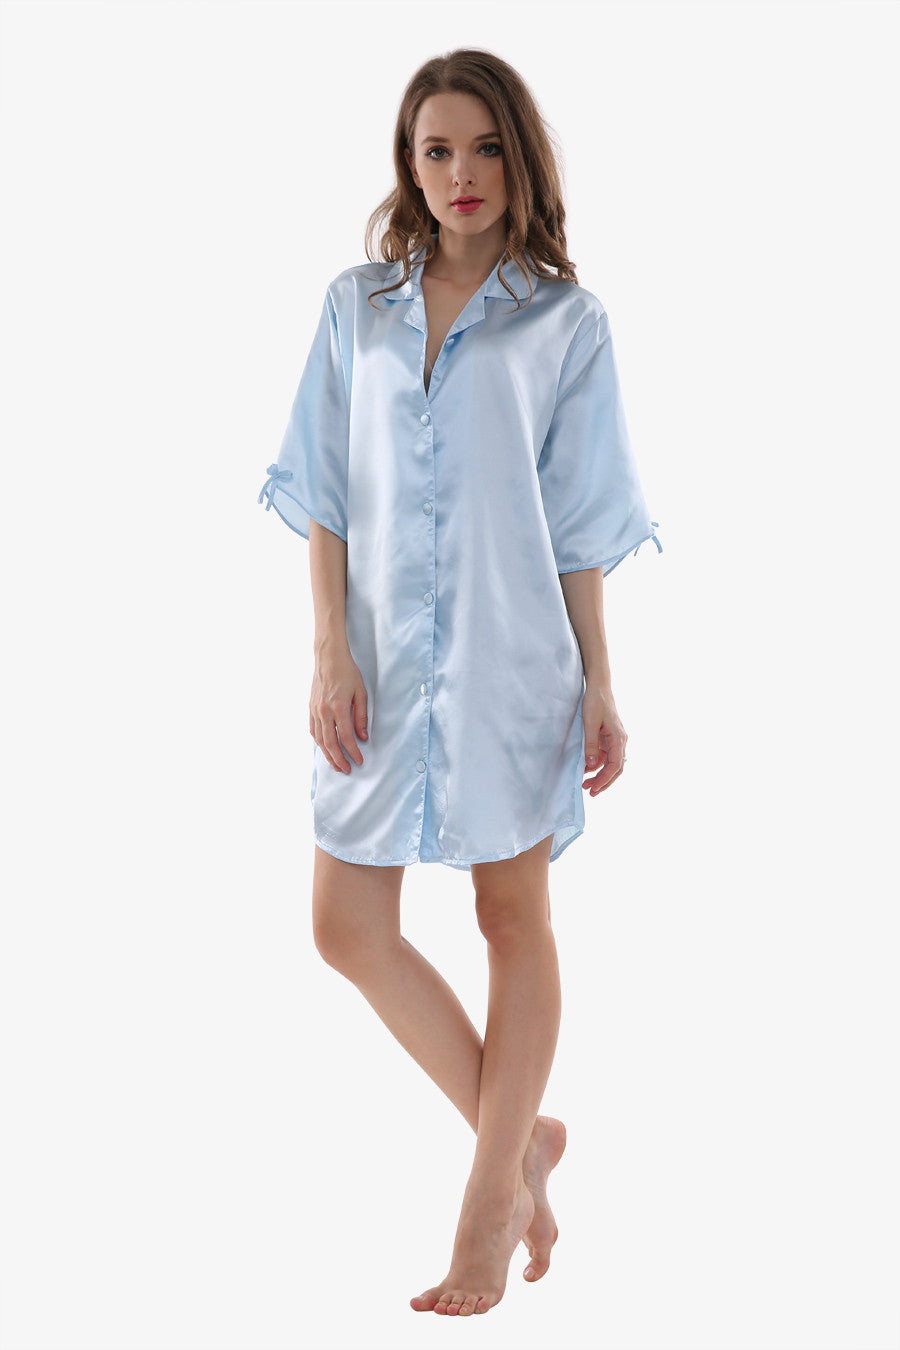 Sexy Silk Light Blue Sleepwear